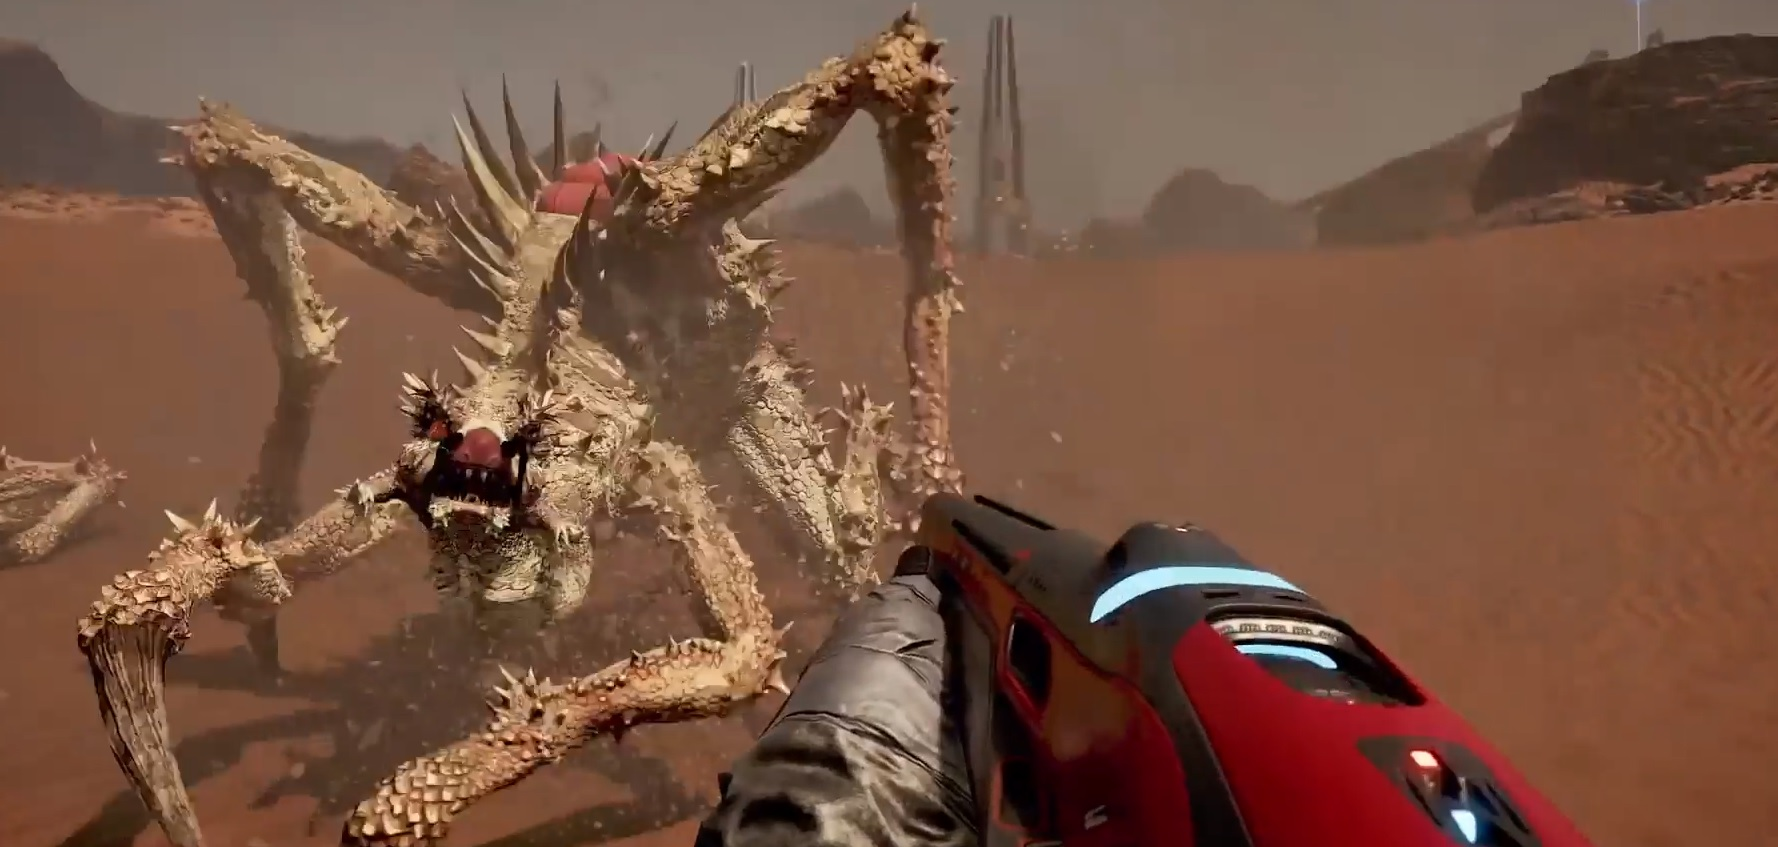 Trailer Far Cry 5 Dlc Packs Include Zombie And Alien Battlegrounds Bloody Disgusting